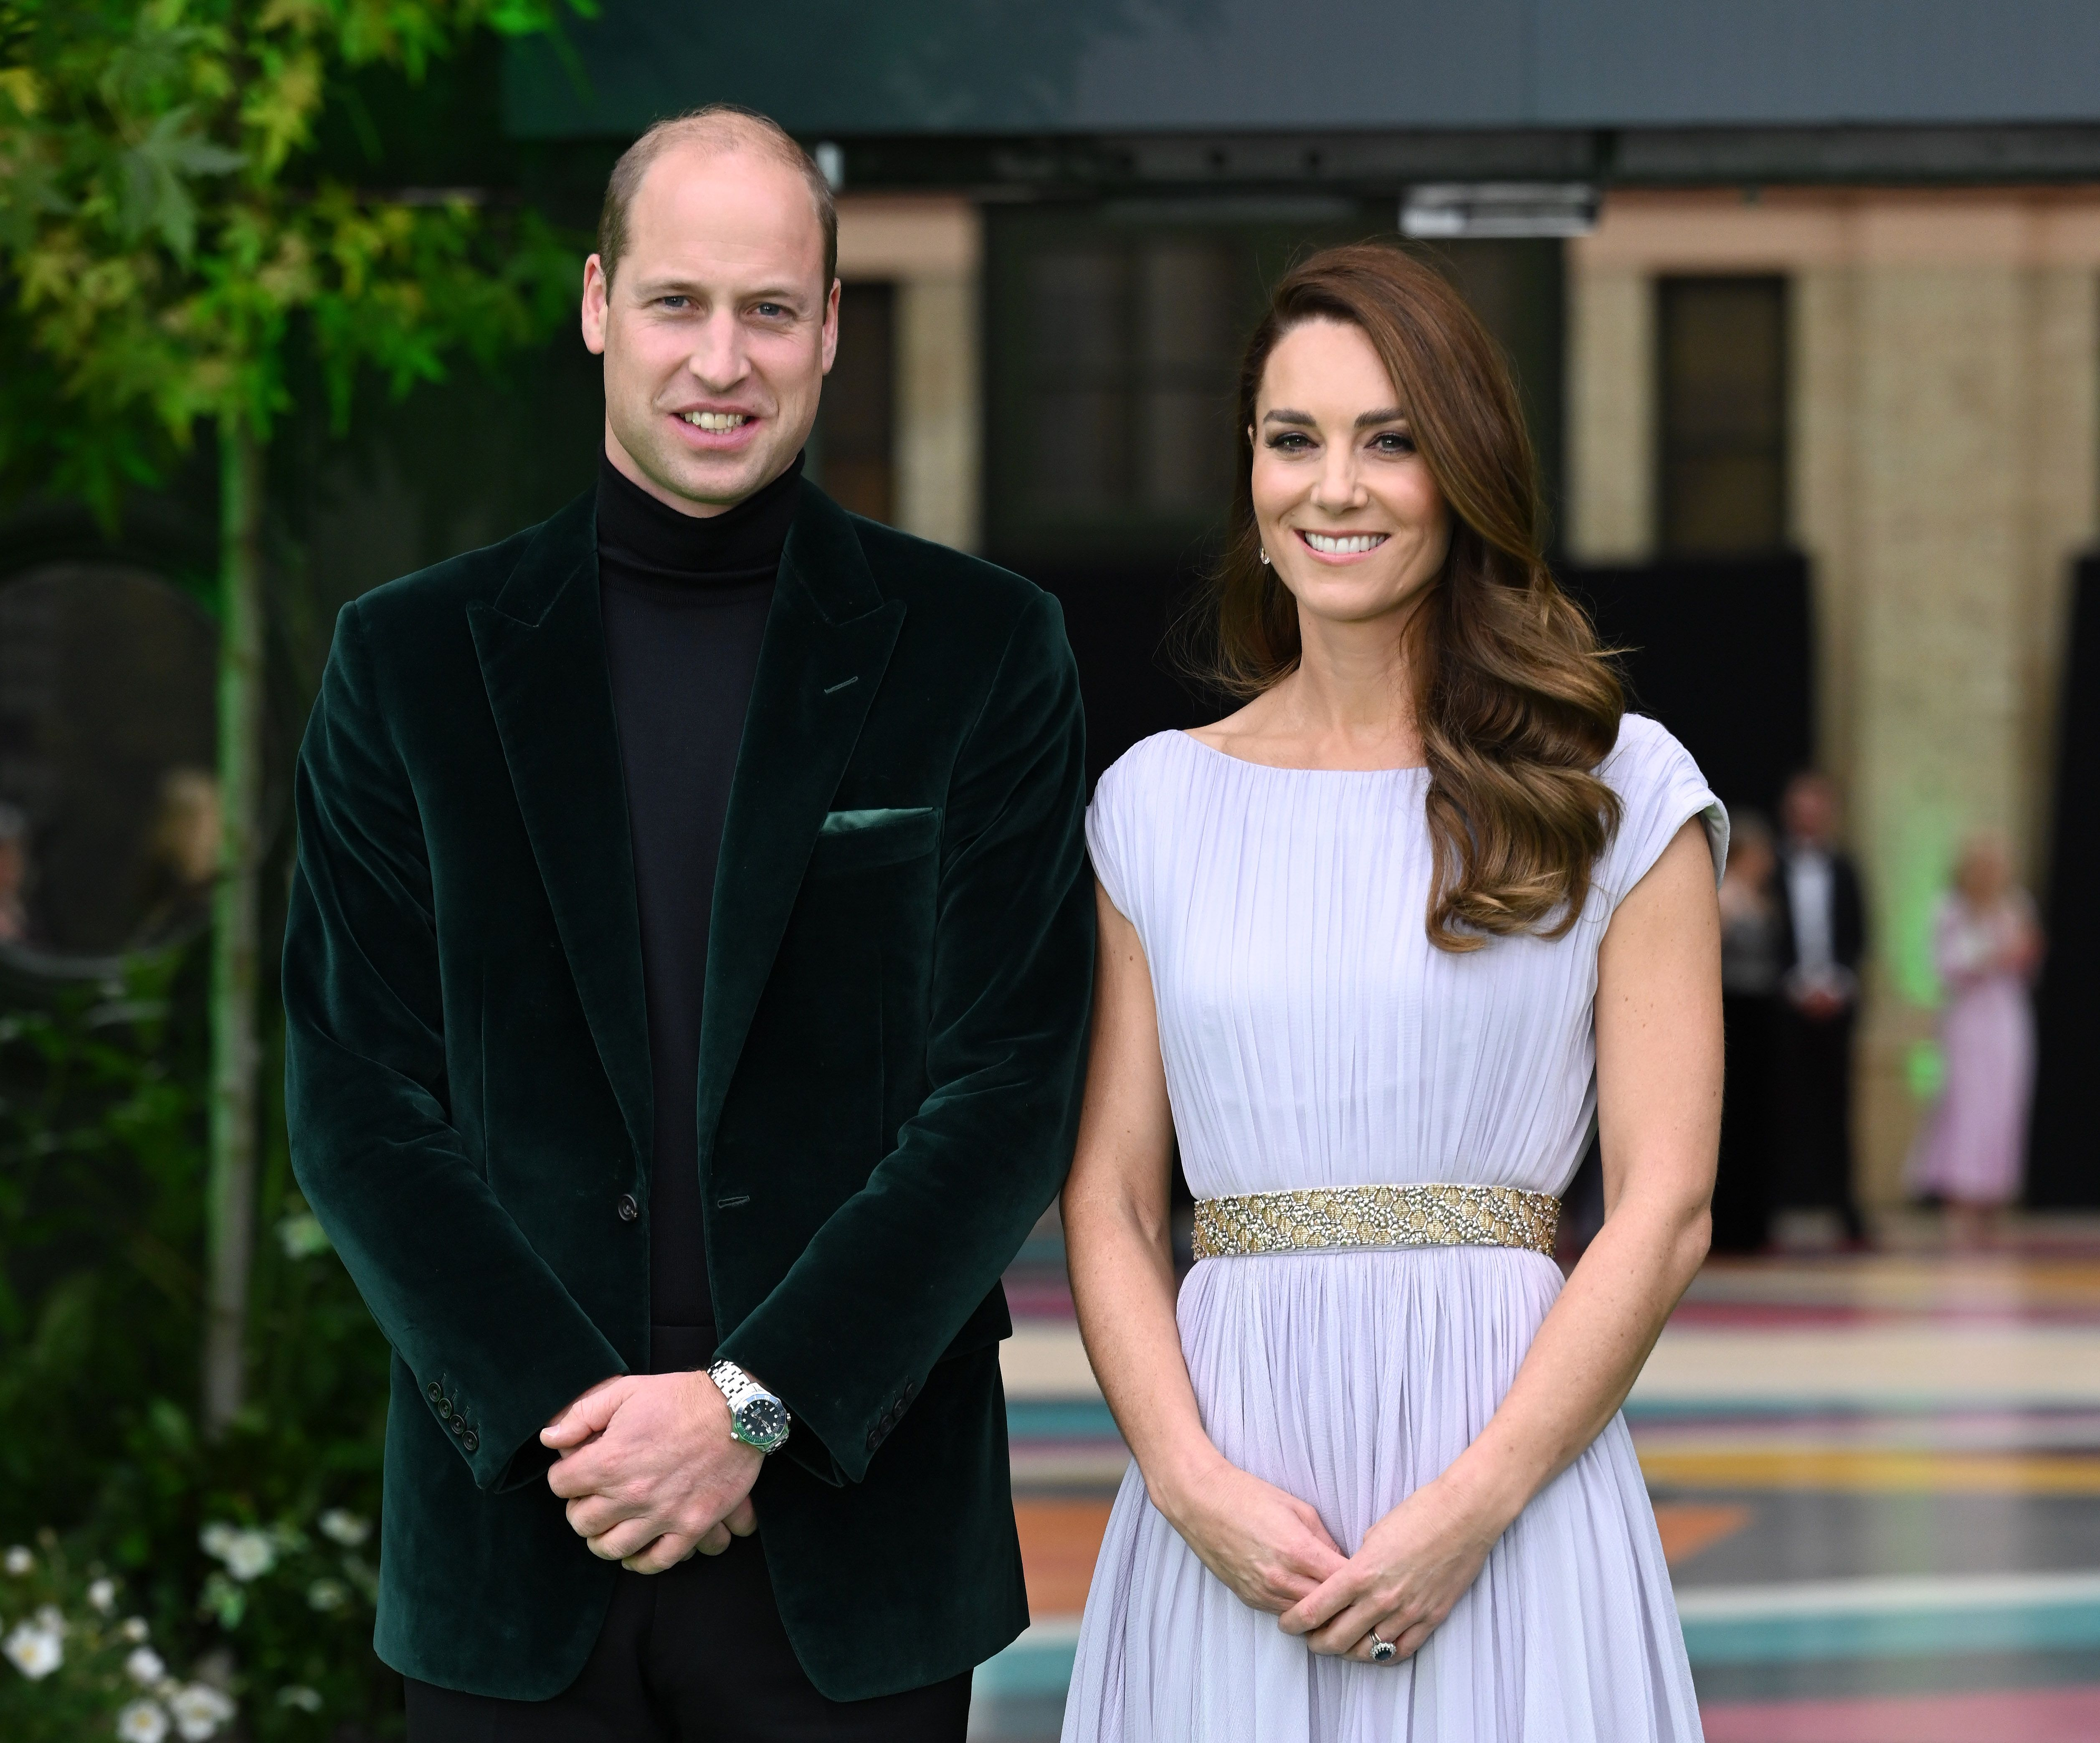 The Duke and Duchess of Cambridge are going to America